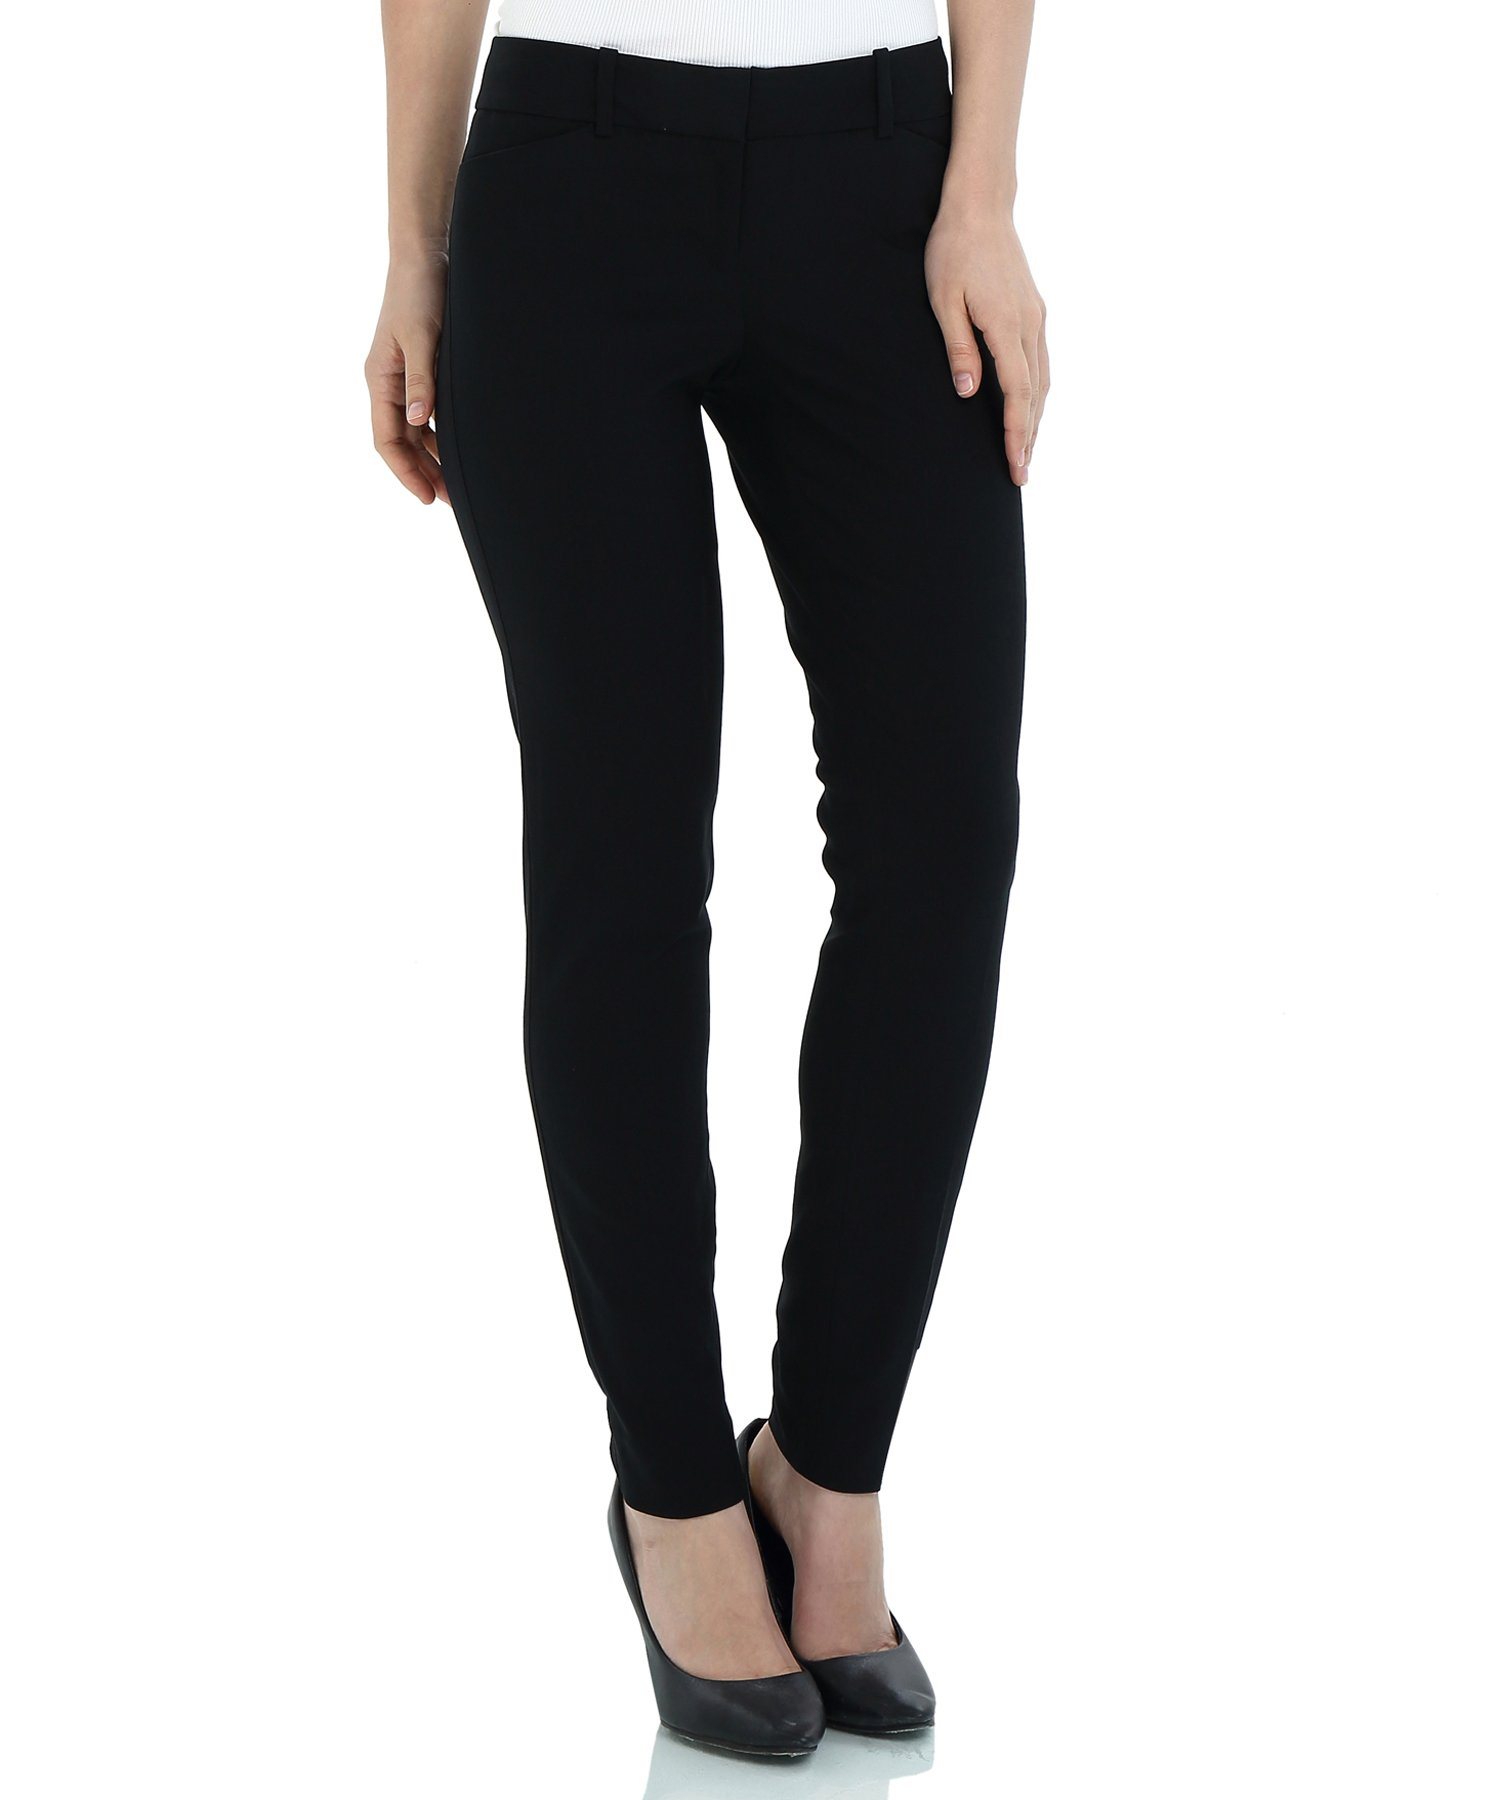 SATINATO Women's Straight Pants Stretch Slim Skinny Solid Trousers Casual Business Office Black